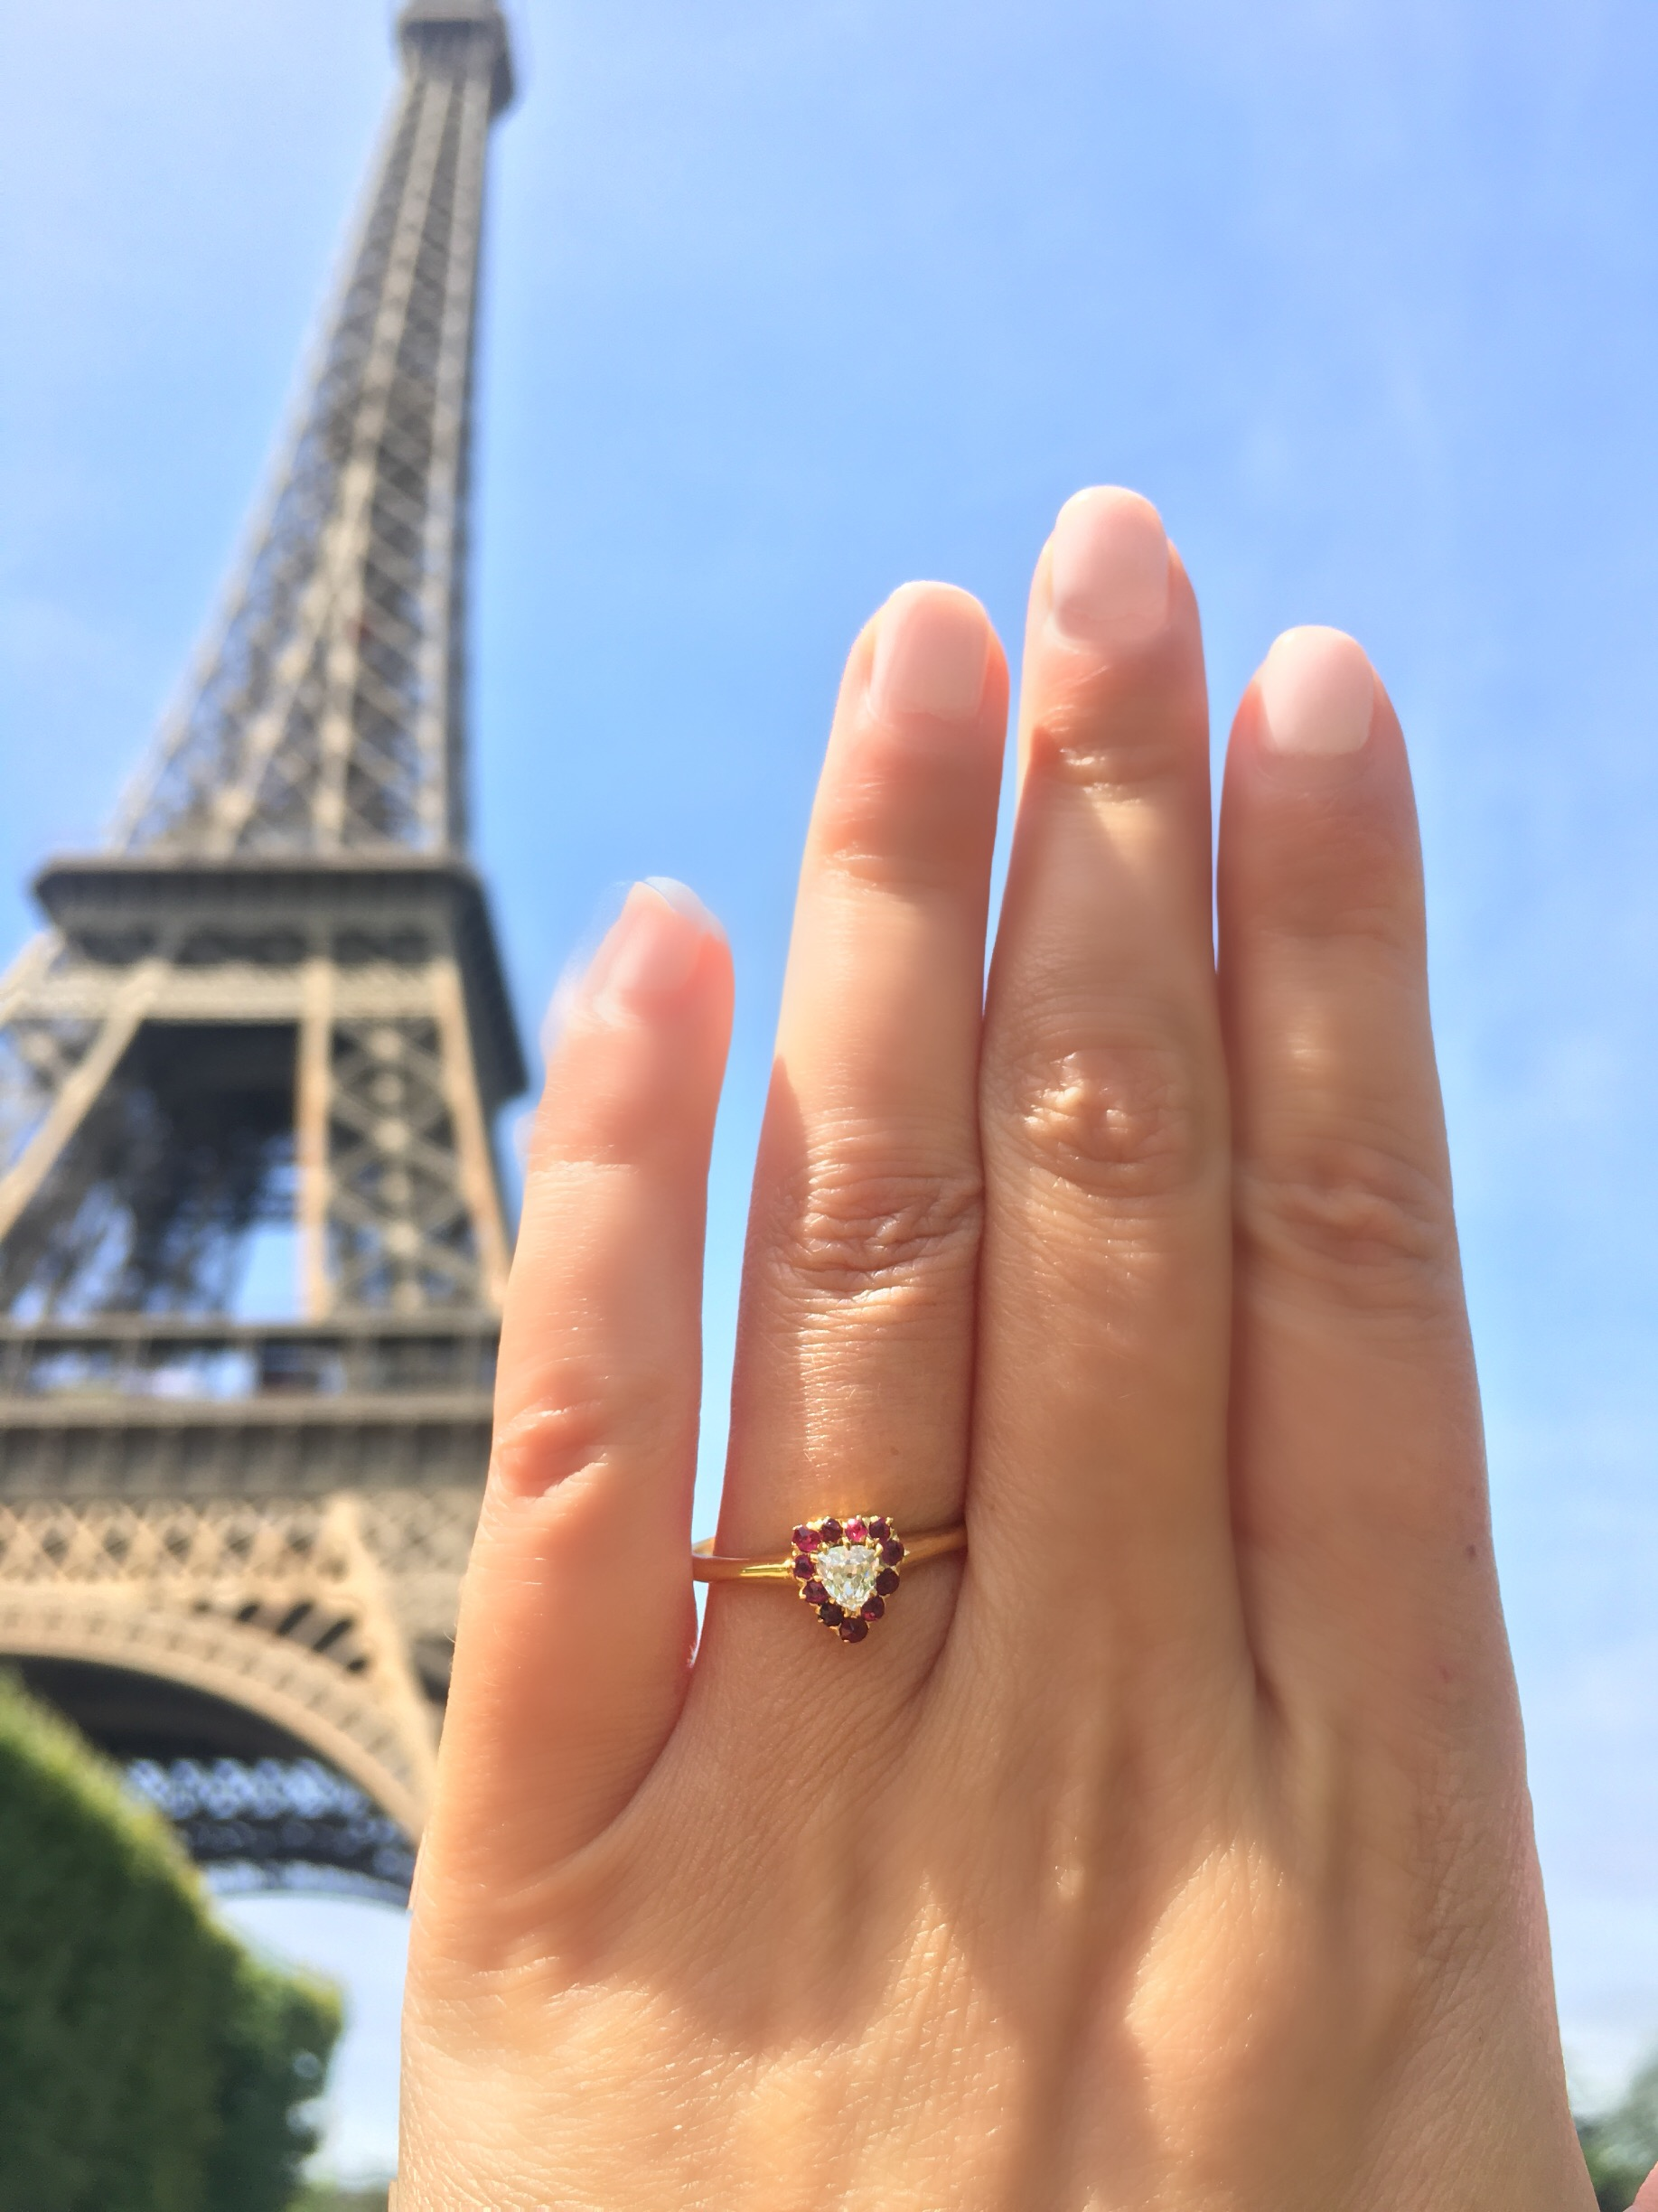 Heart-shaped engagement ring with Eiffel Tower in background